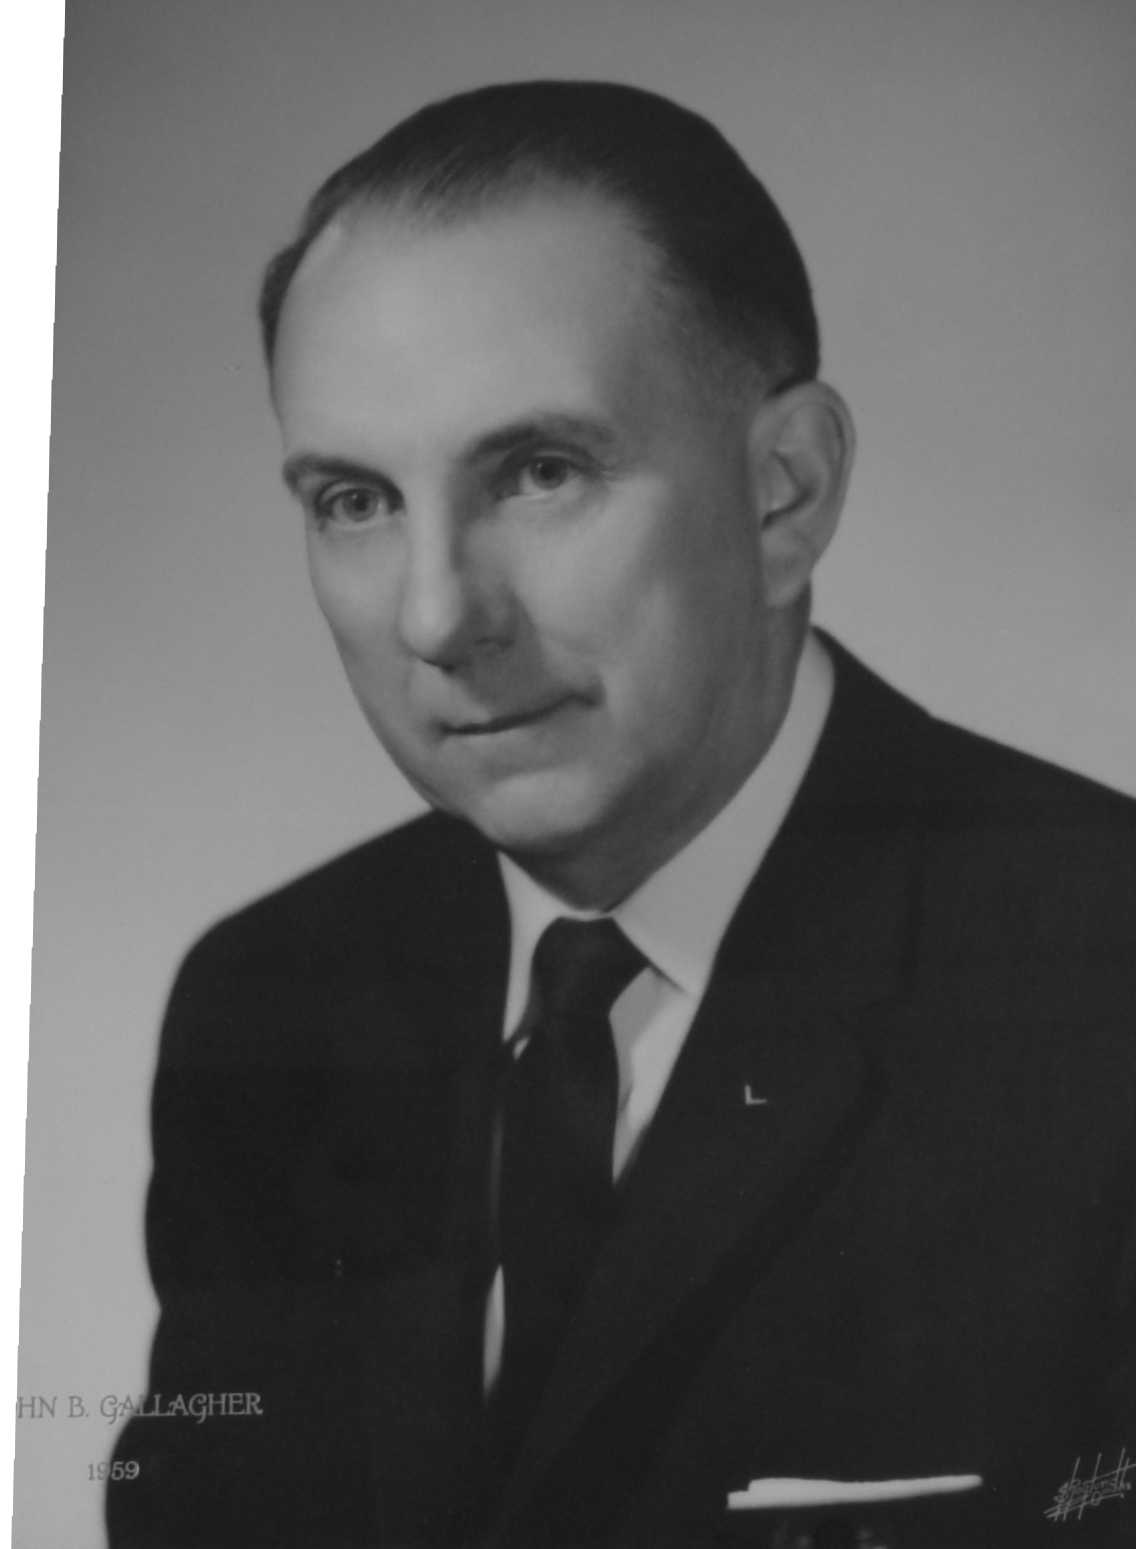 John B. Gallagher, 1959